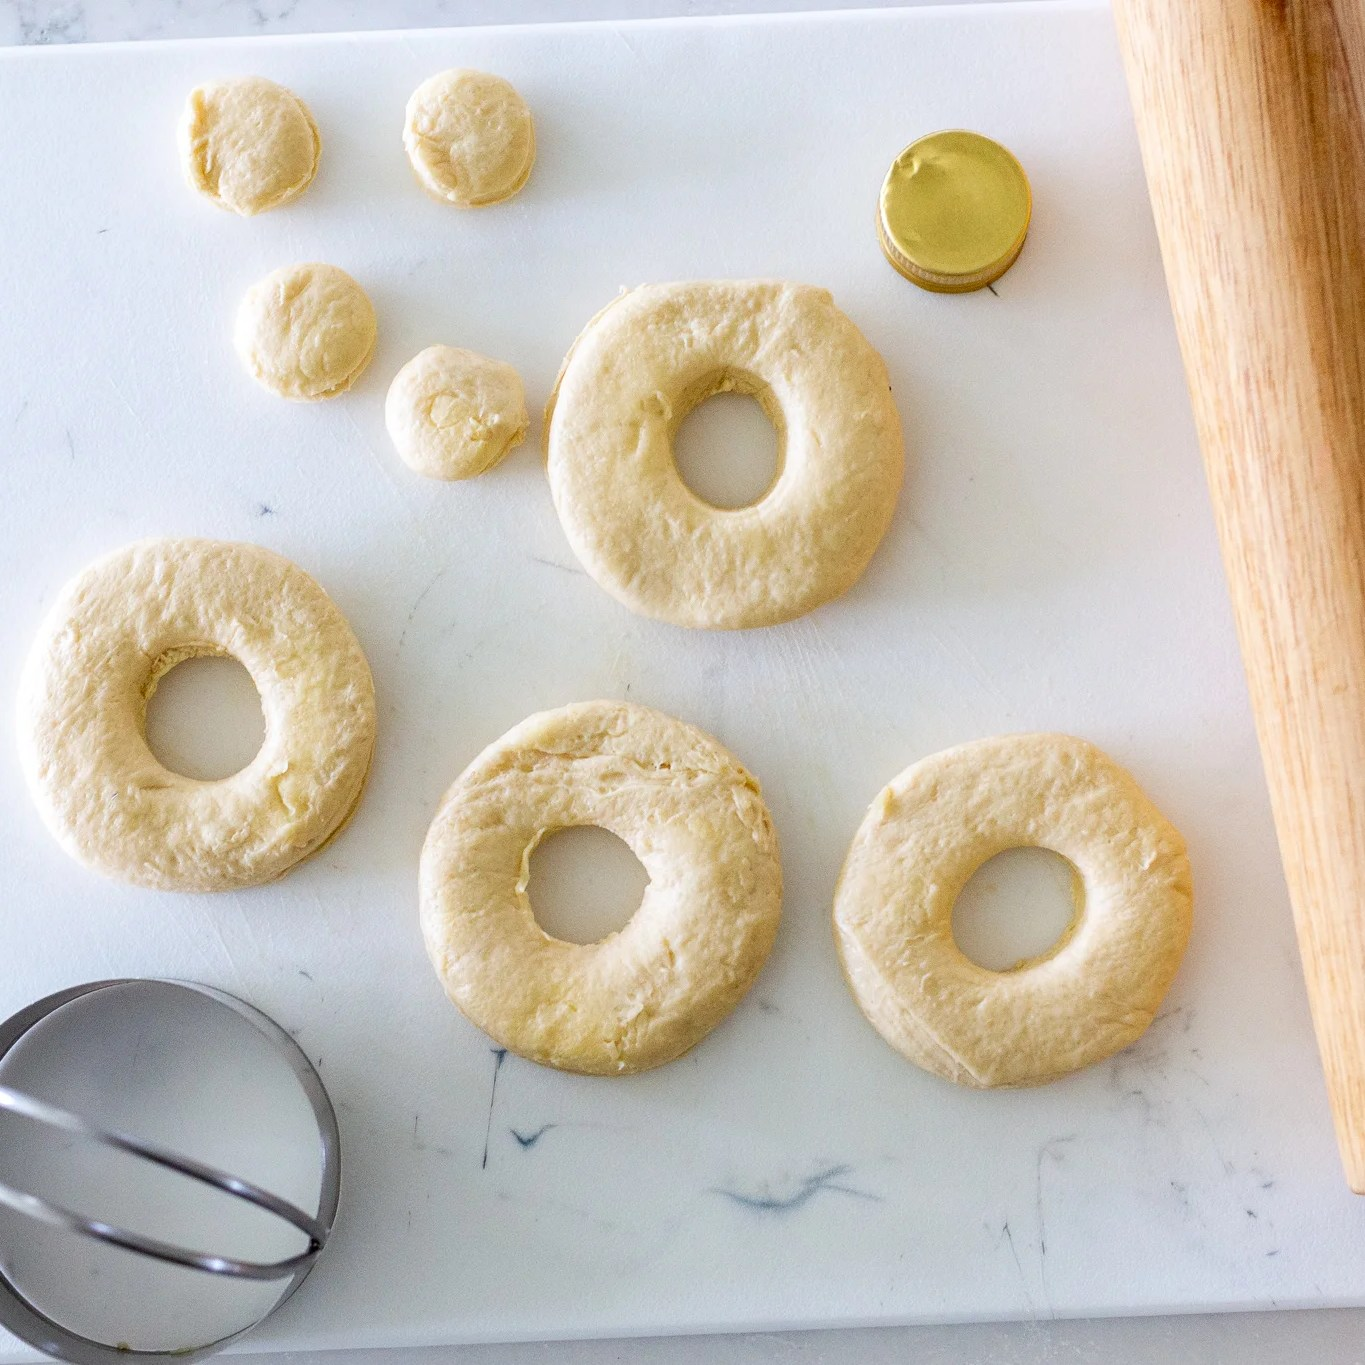 Cut out donut holes on a cutting board